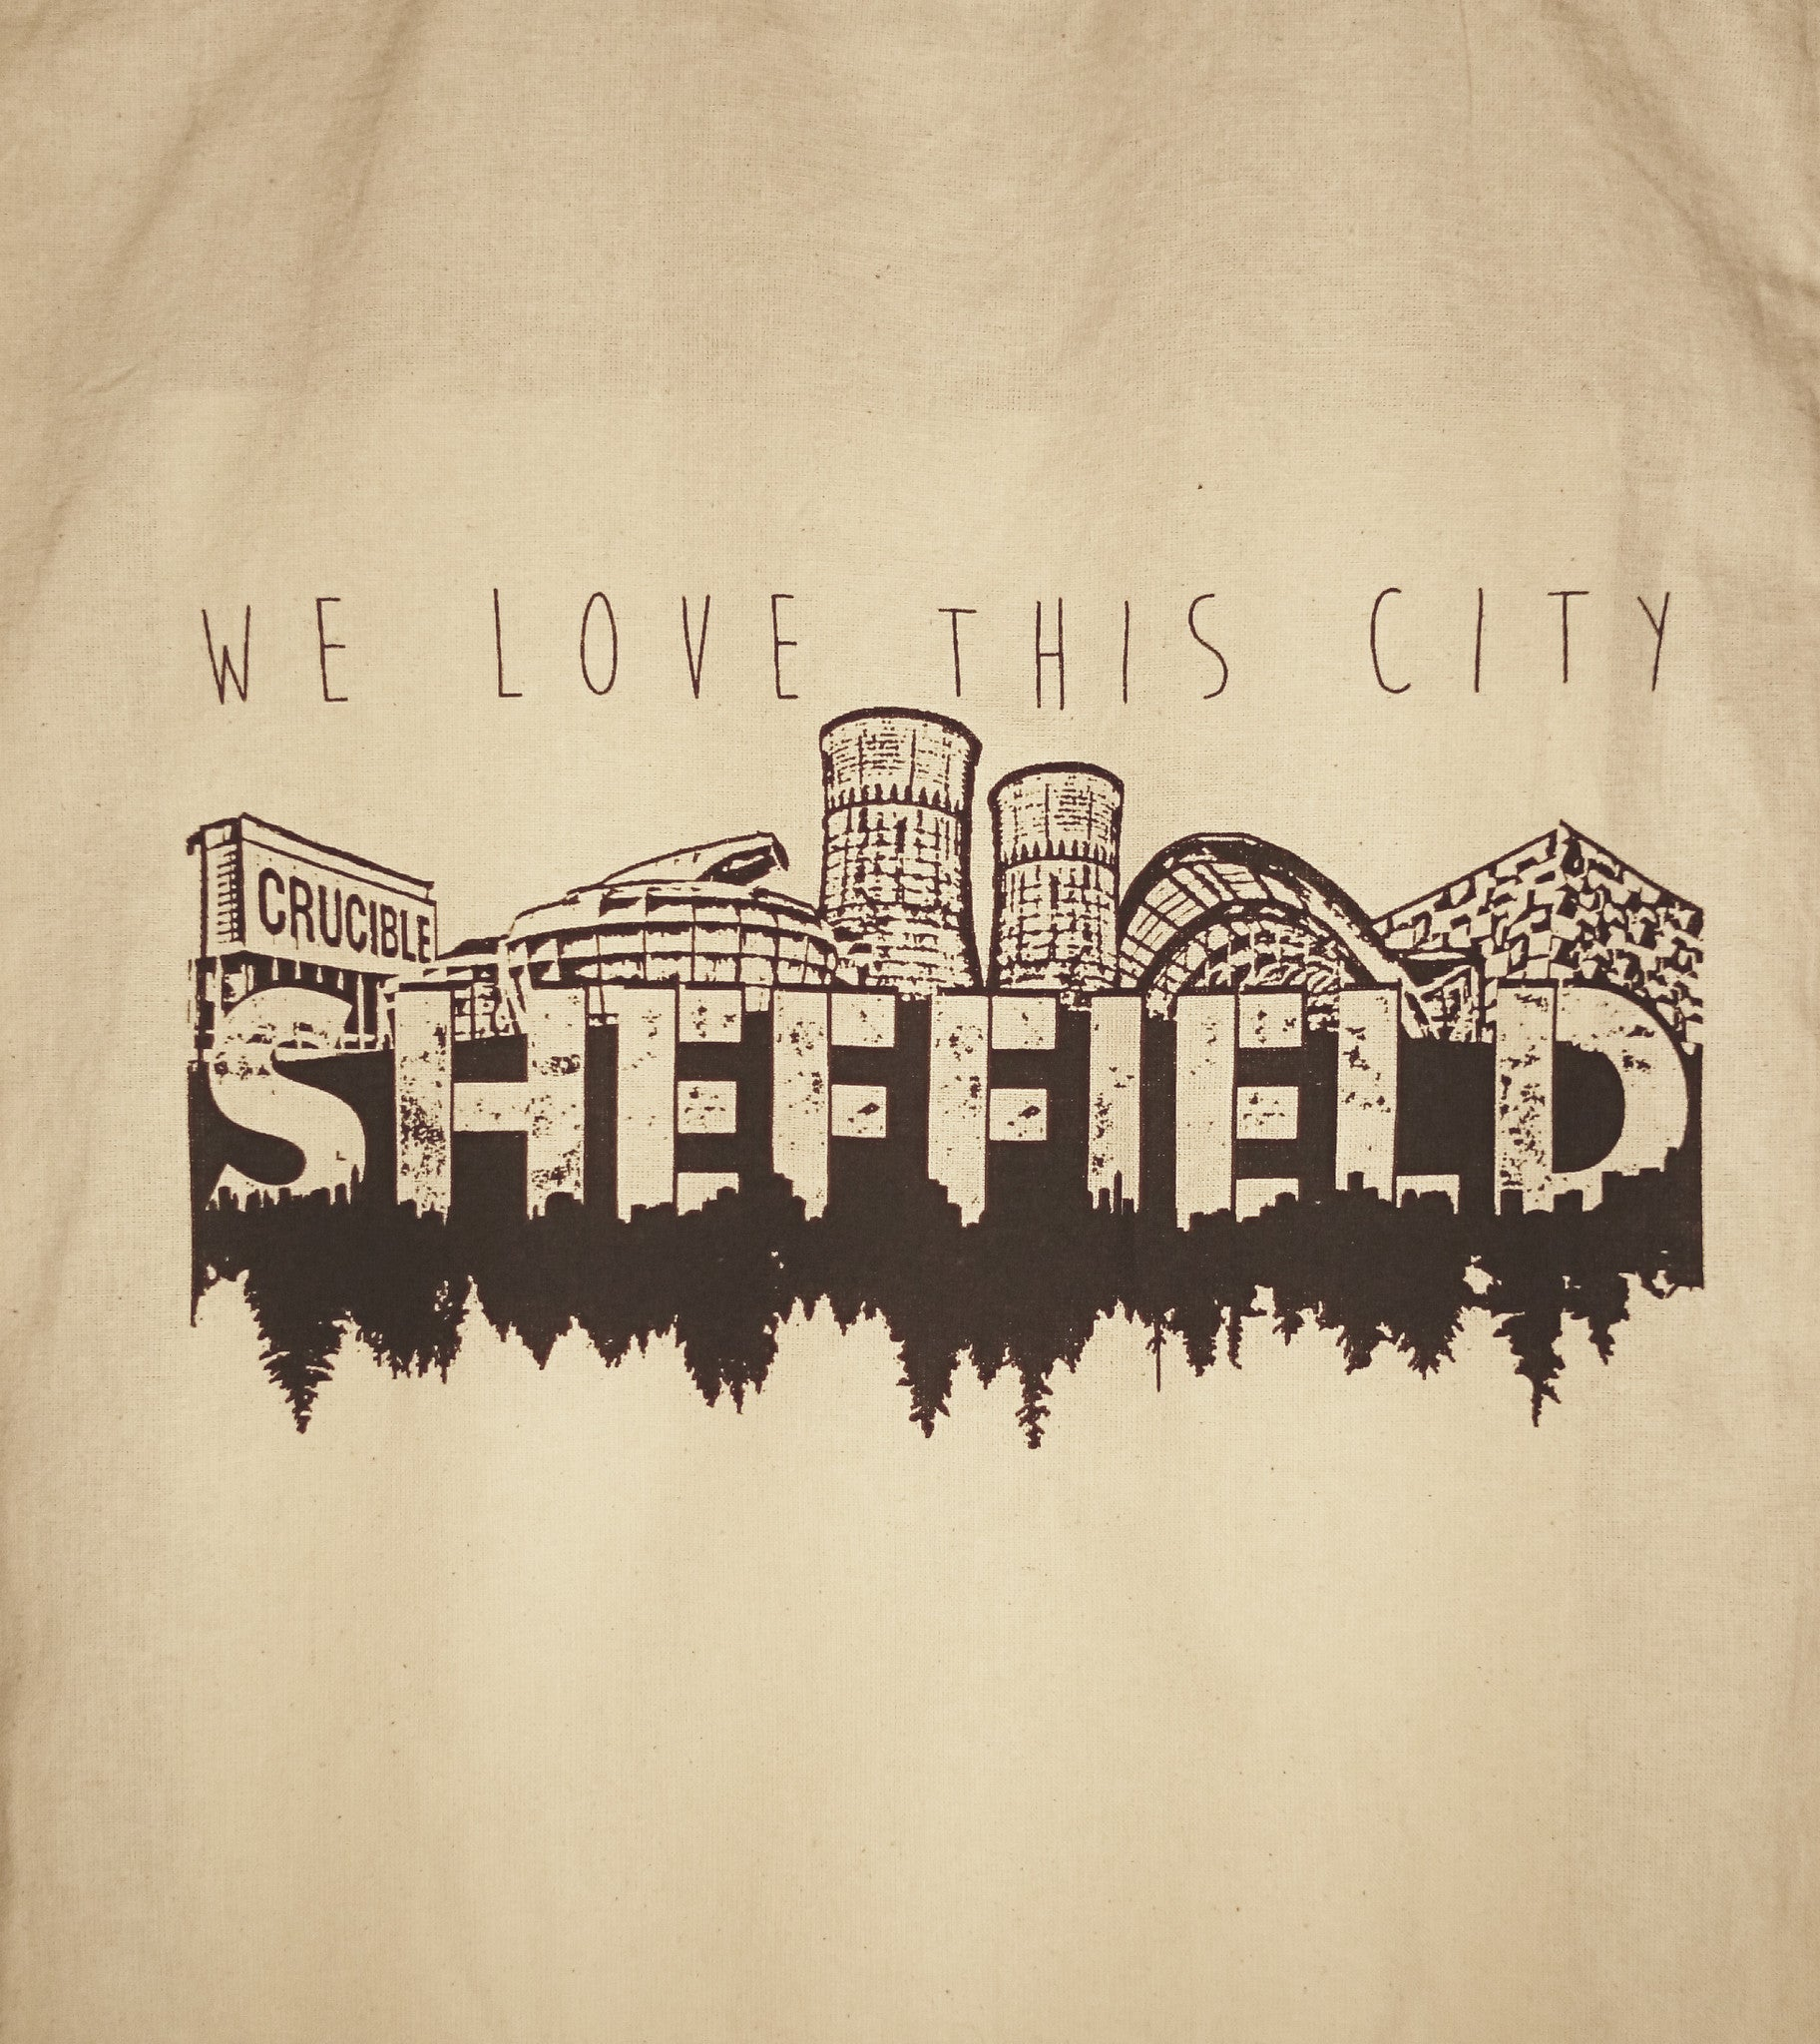 'We Love This City' Cotton Eco Bag